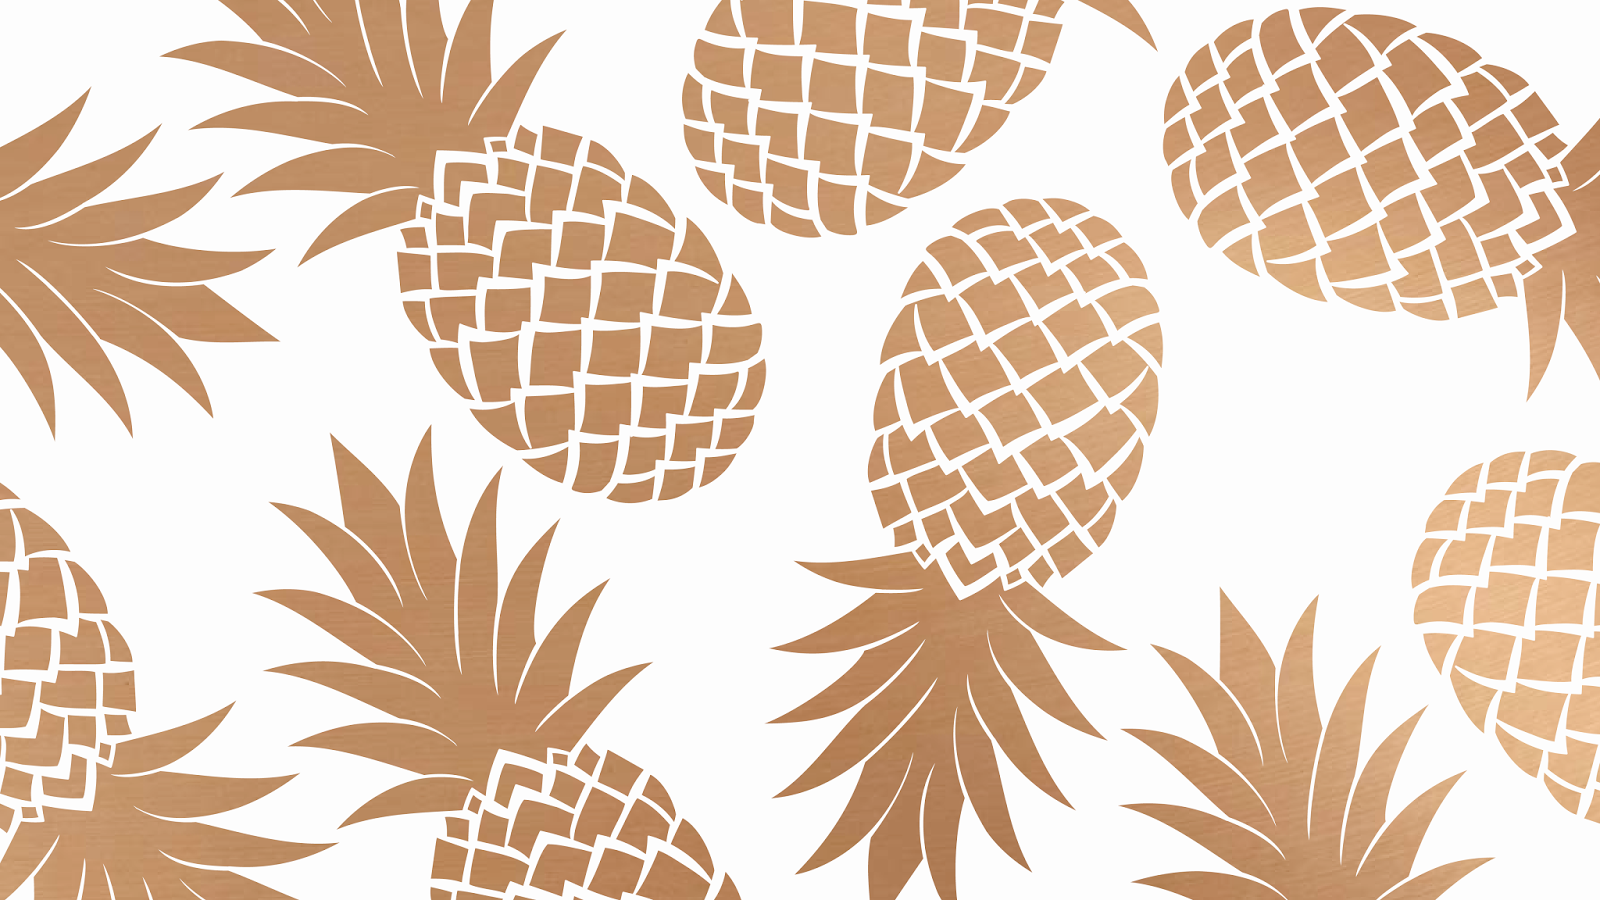 Amazing Wallpaper Macbook Pineapple - f067a75402248de7e41d4ab2244e2fdf  Perfect Image Reference_866551.png